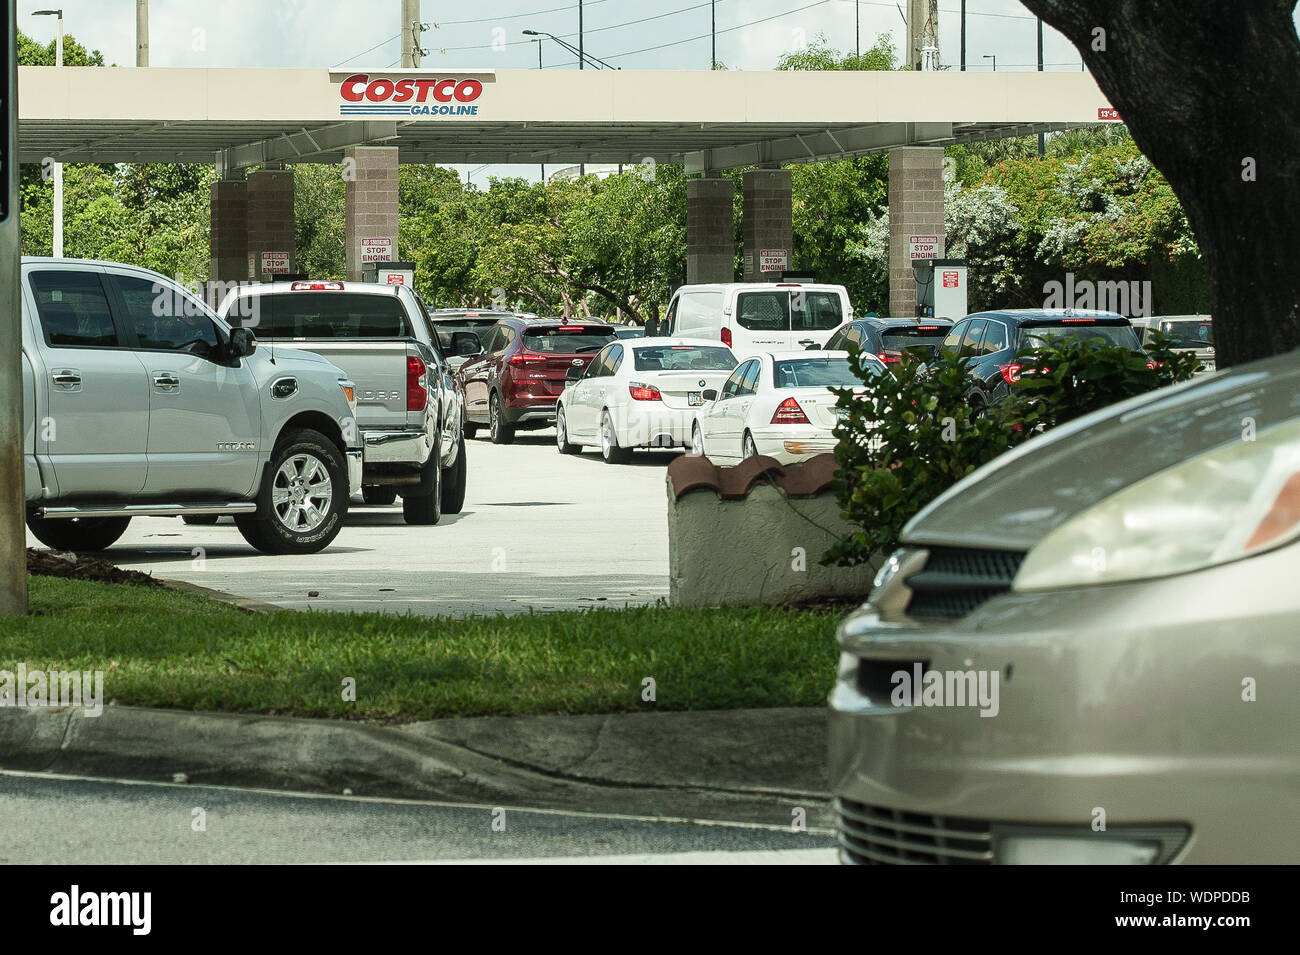 Davie, Florida, USA. 29th Aug, 2019. Residents of Florida line up for gasoline in preperation for hurricane Dorian, in Davie, Fla. Florida Governor, Ron Desantis, declared a state of emergency for 26 counties in Florida, as the hurricane is forecast to hit Florida as a major category 4 hurricane Credit: Orit Ben-Ezzer/ZUMA Wire/Alamy Live News Stock Photo